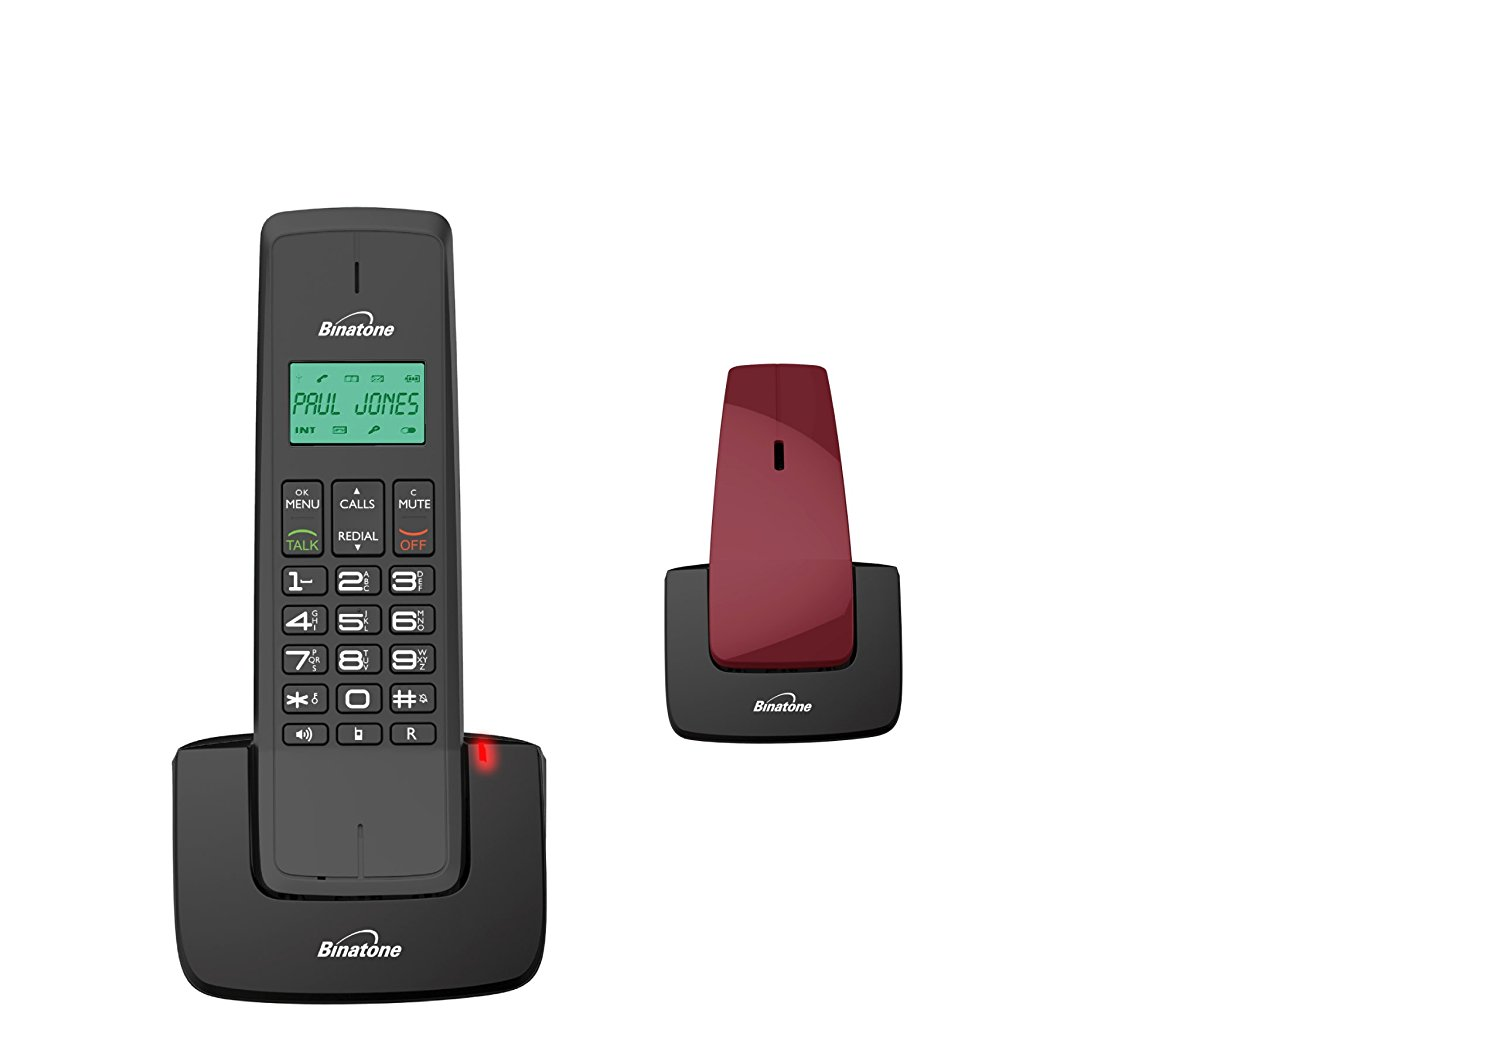 Brand new binatone designer 2102 twin dect digital cordless phone red ebay - Designer cordless home phones ...